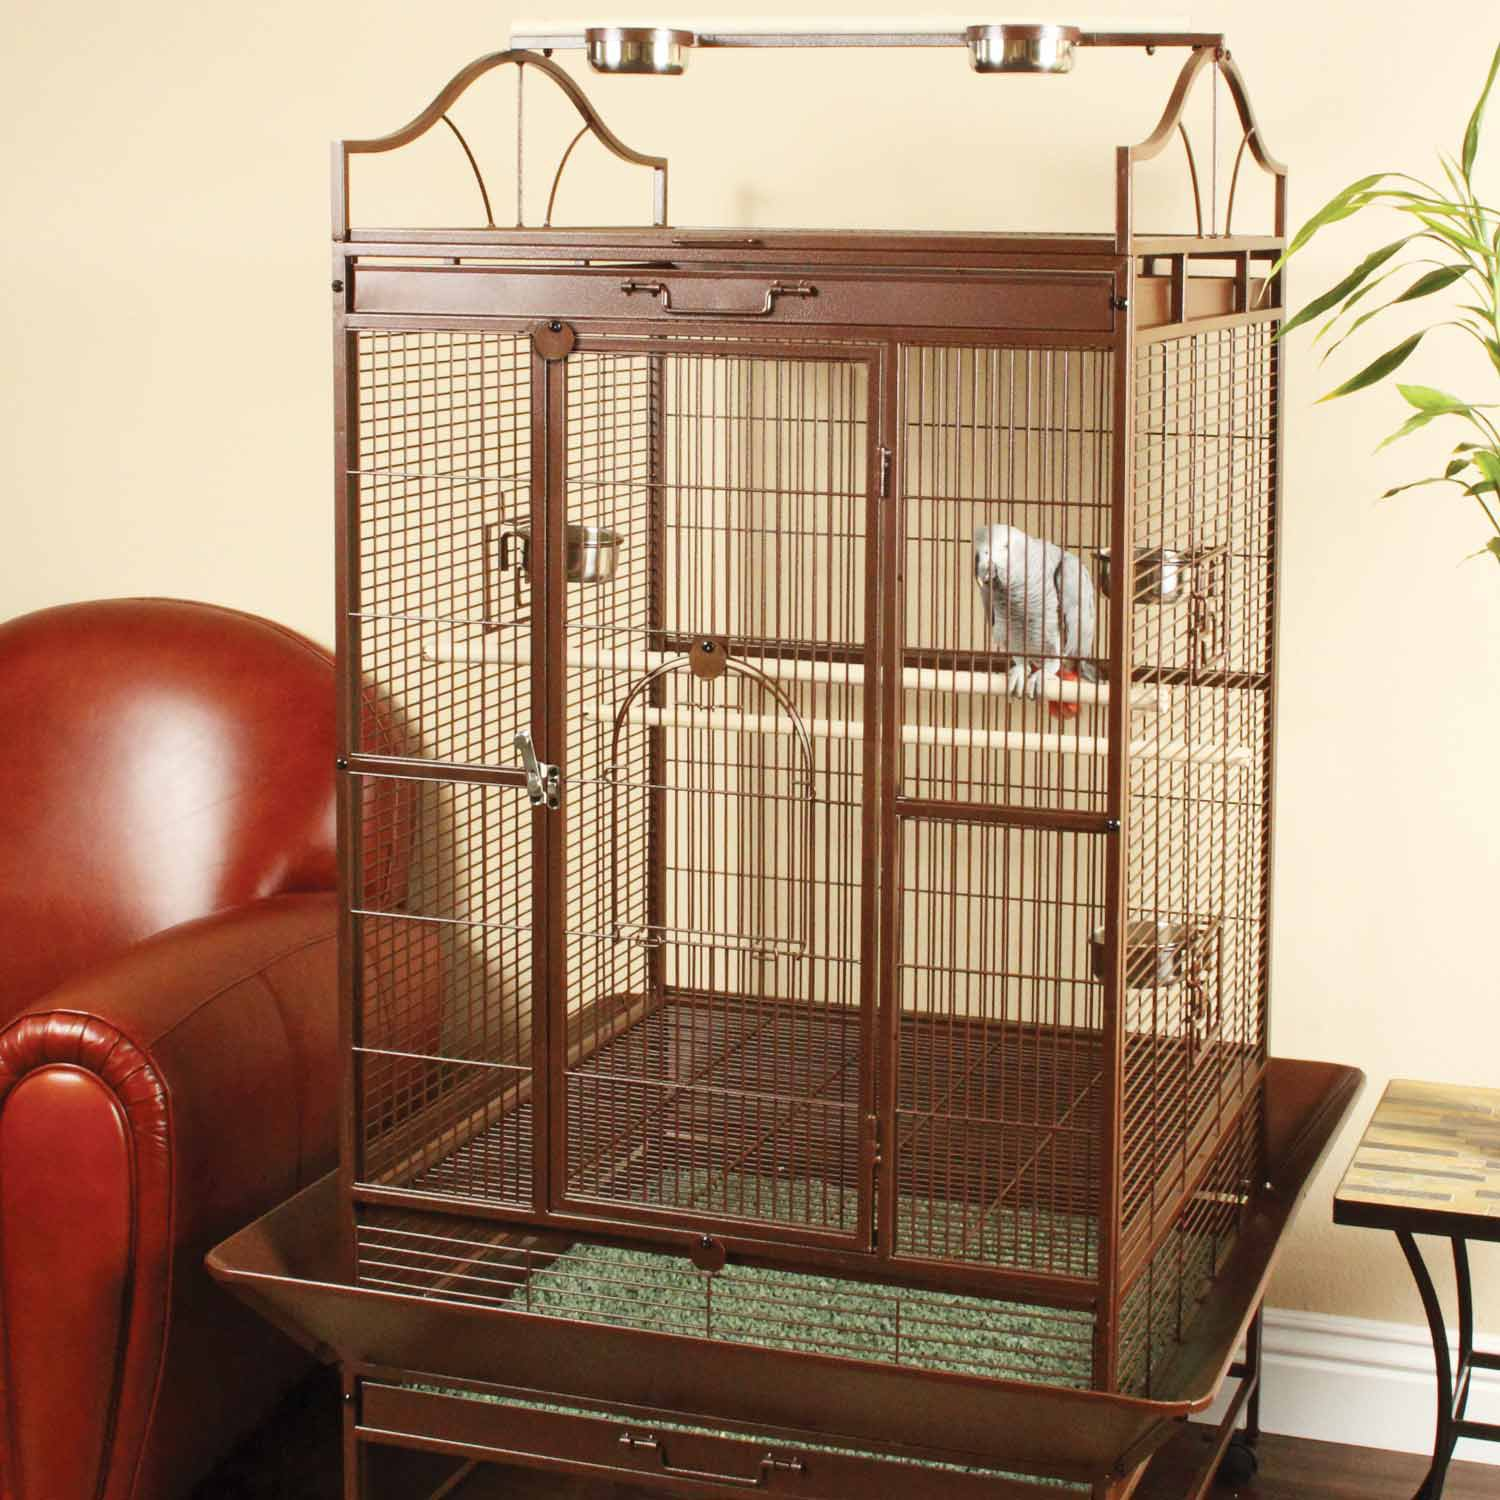 You Me Standing Parrot Cage You Me Standing Parrot Cage Https Www Petco Com Shop En Petcostore Product You And Me S Parrot Cage Bird Cage Parrot Toys